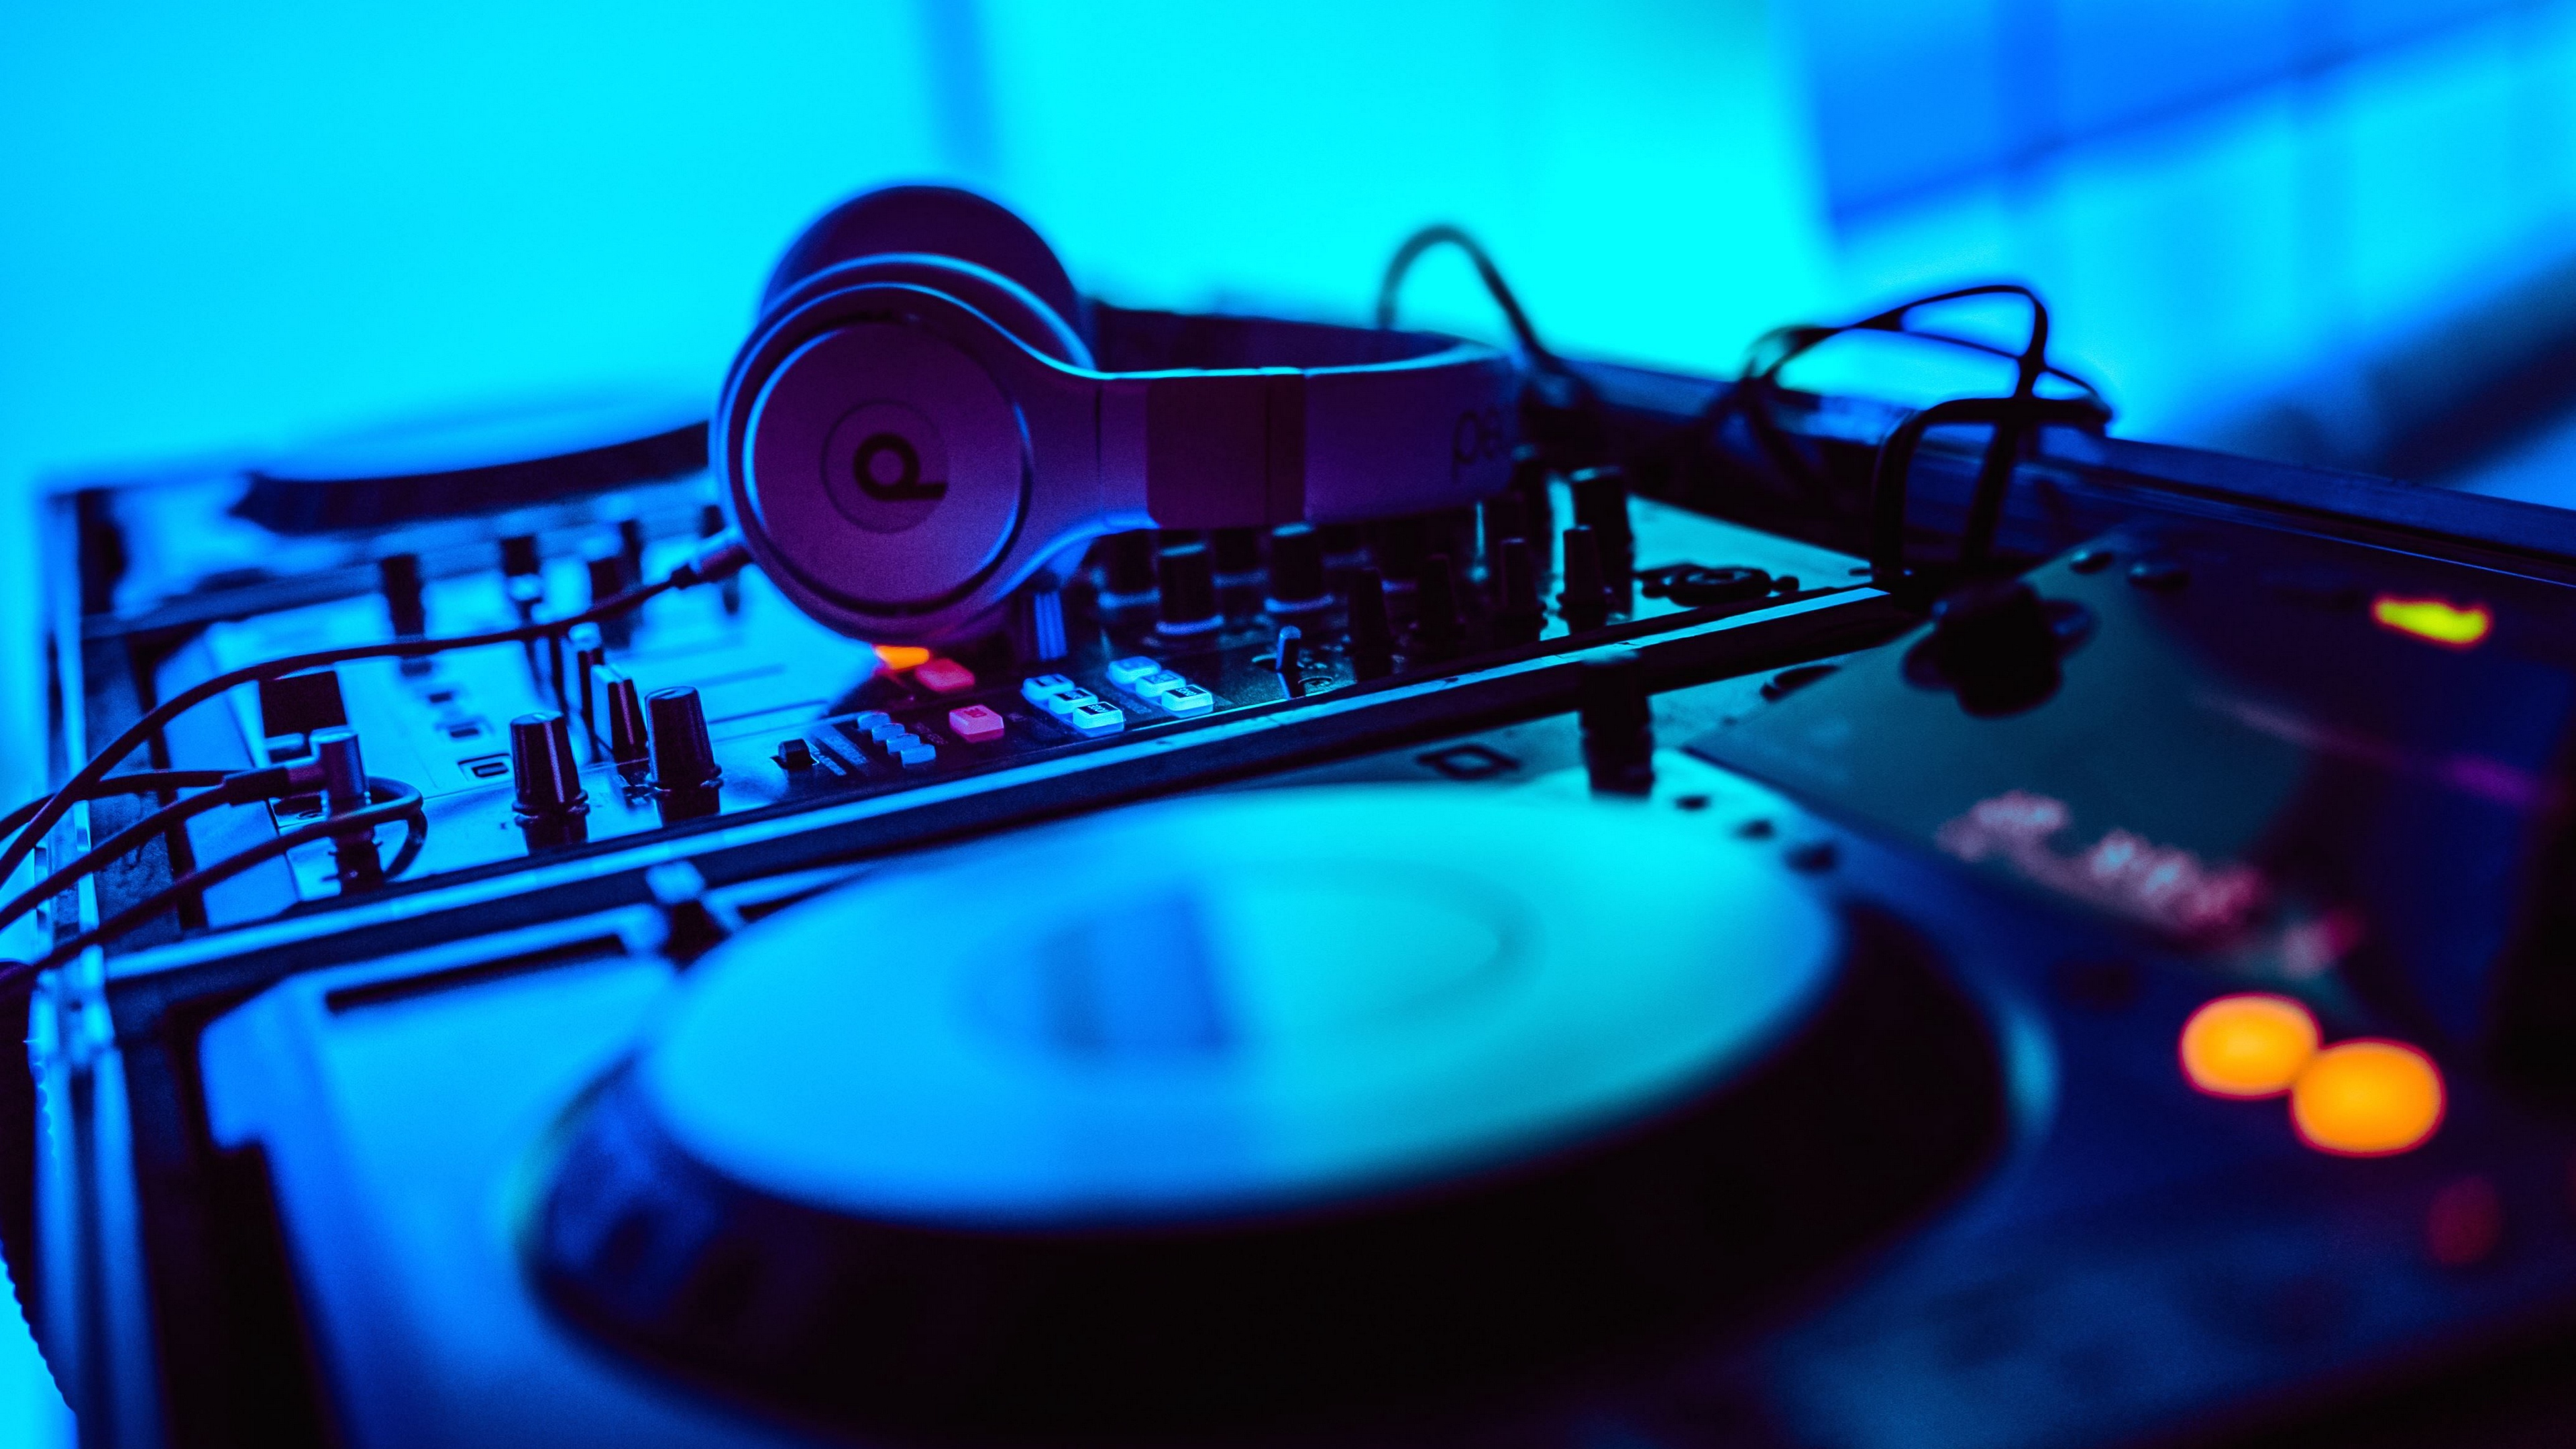 Music 4k Wallpapers For Your Desktop Or Mobile Screen Free And Easy To Download